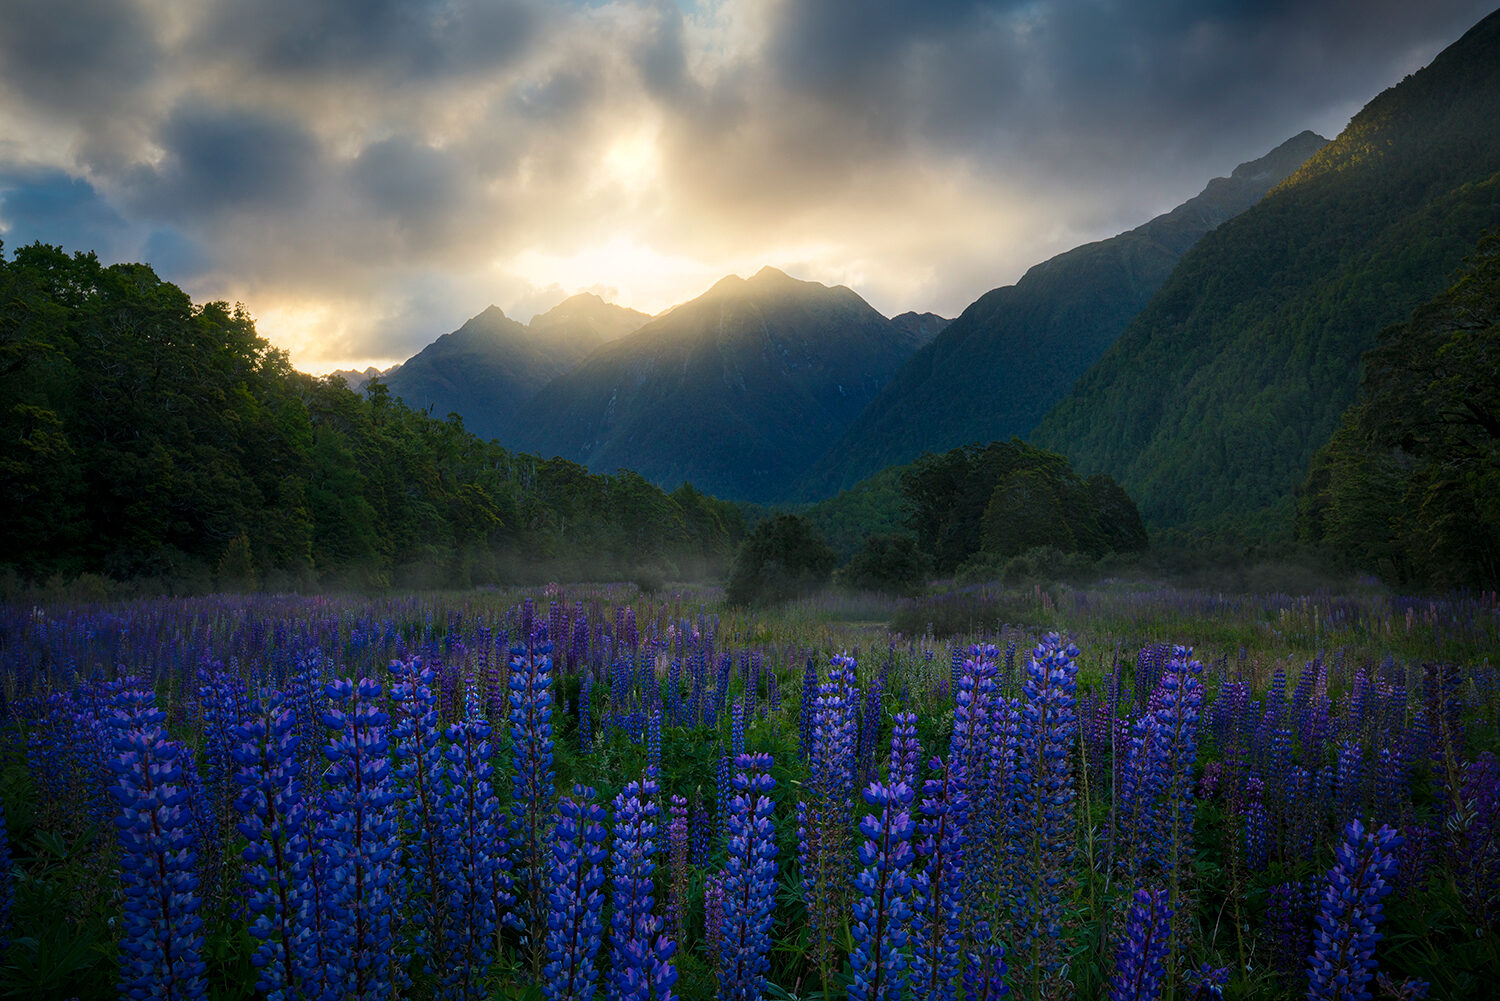 Lupin flowers by the mountains, Fiordland NZ